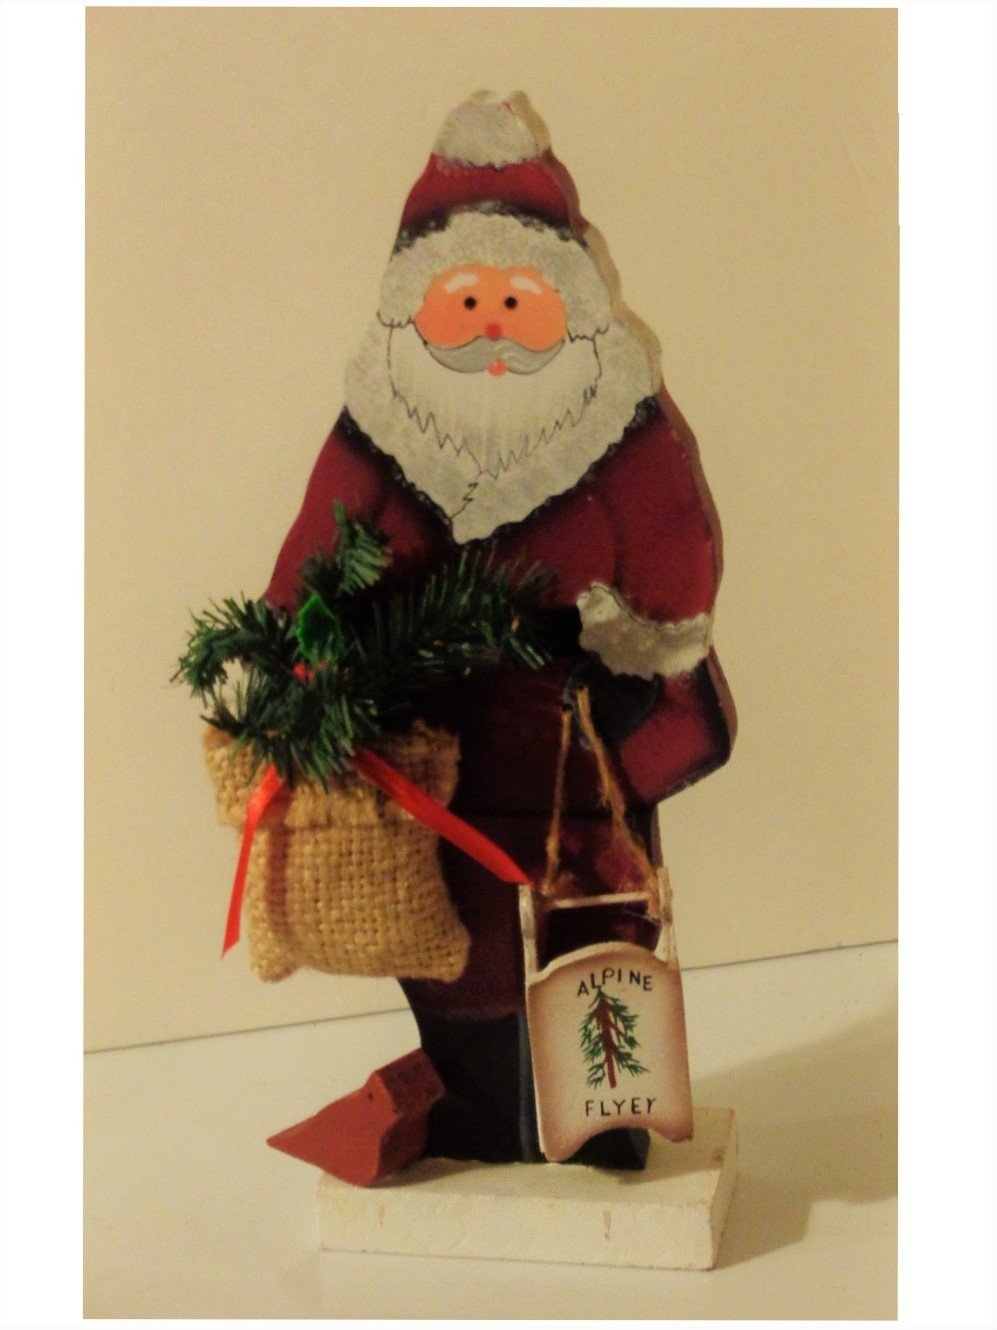 Wood Santa Claus Figurine Holiday Christmas Decor